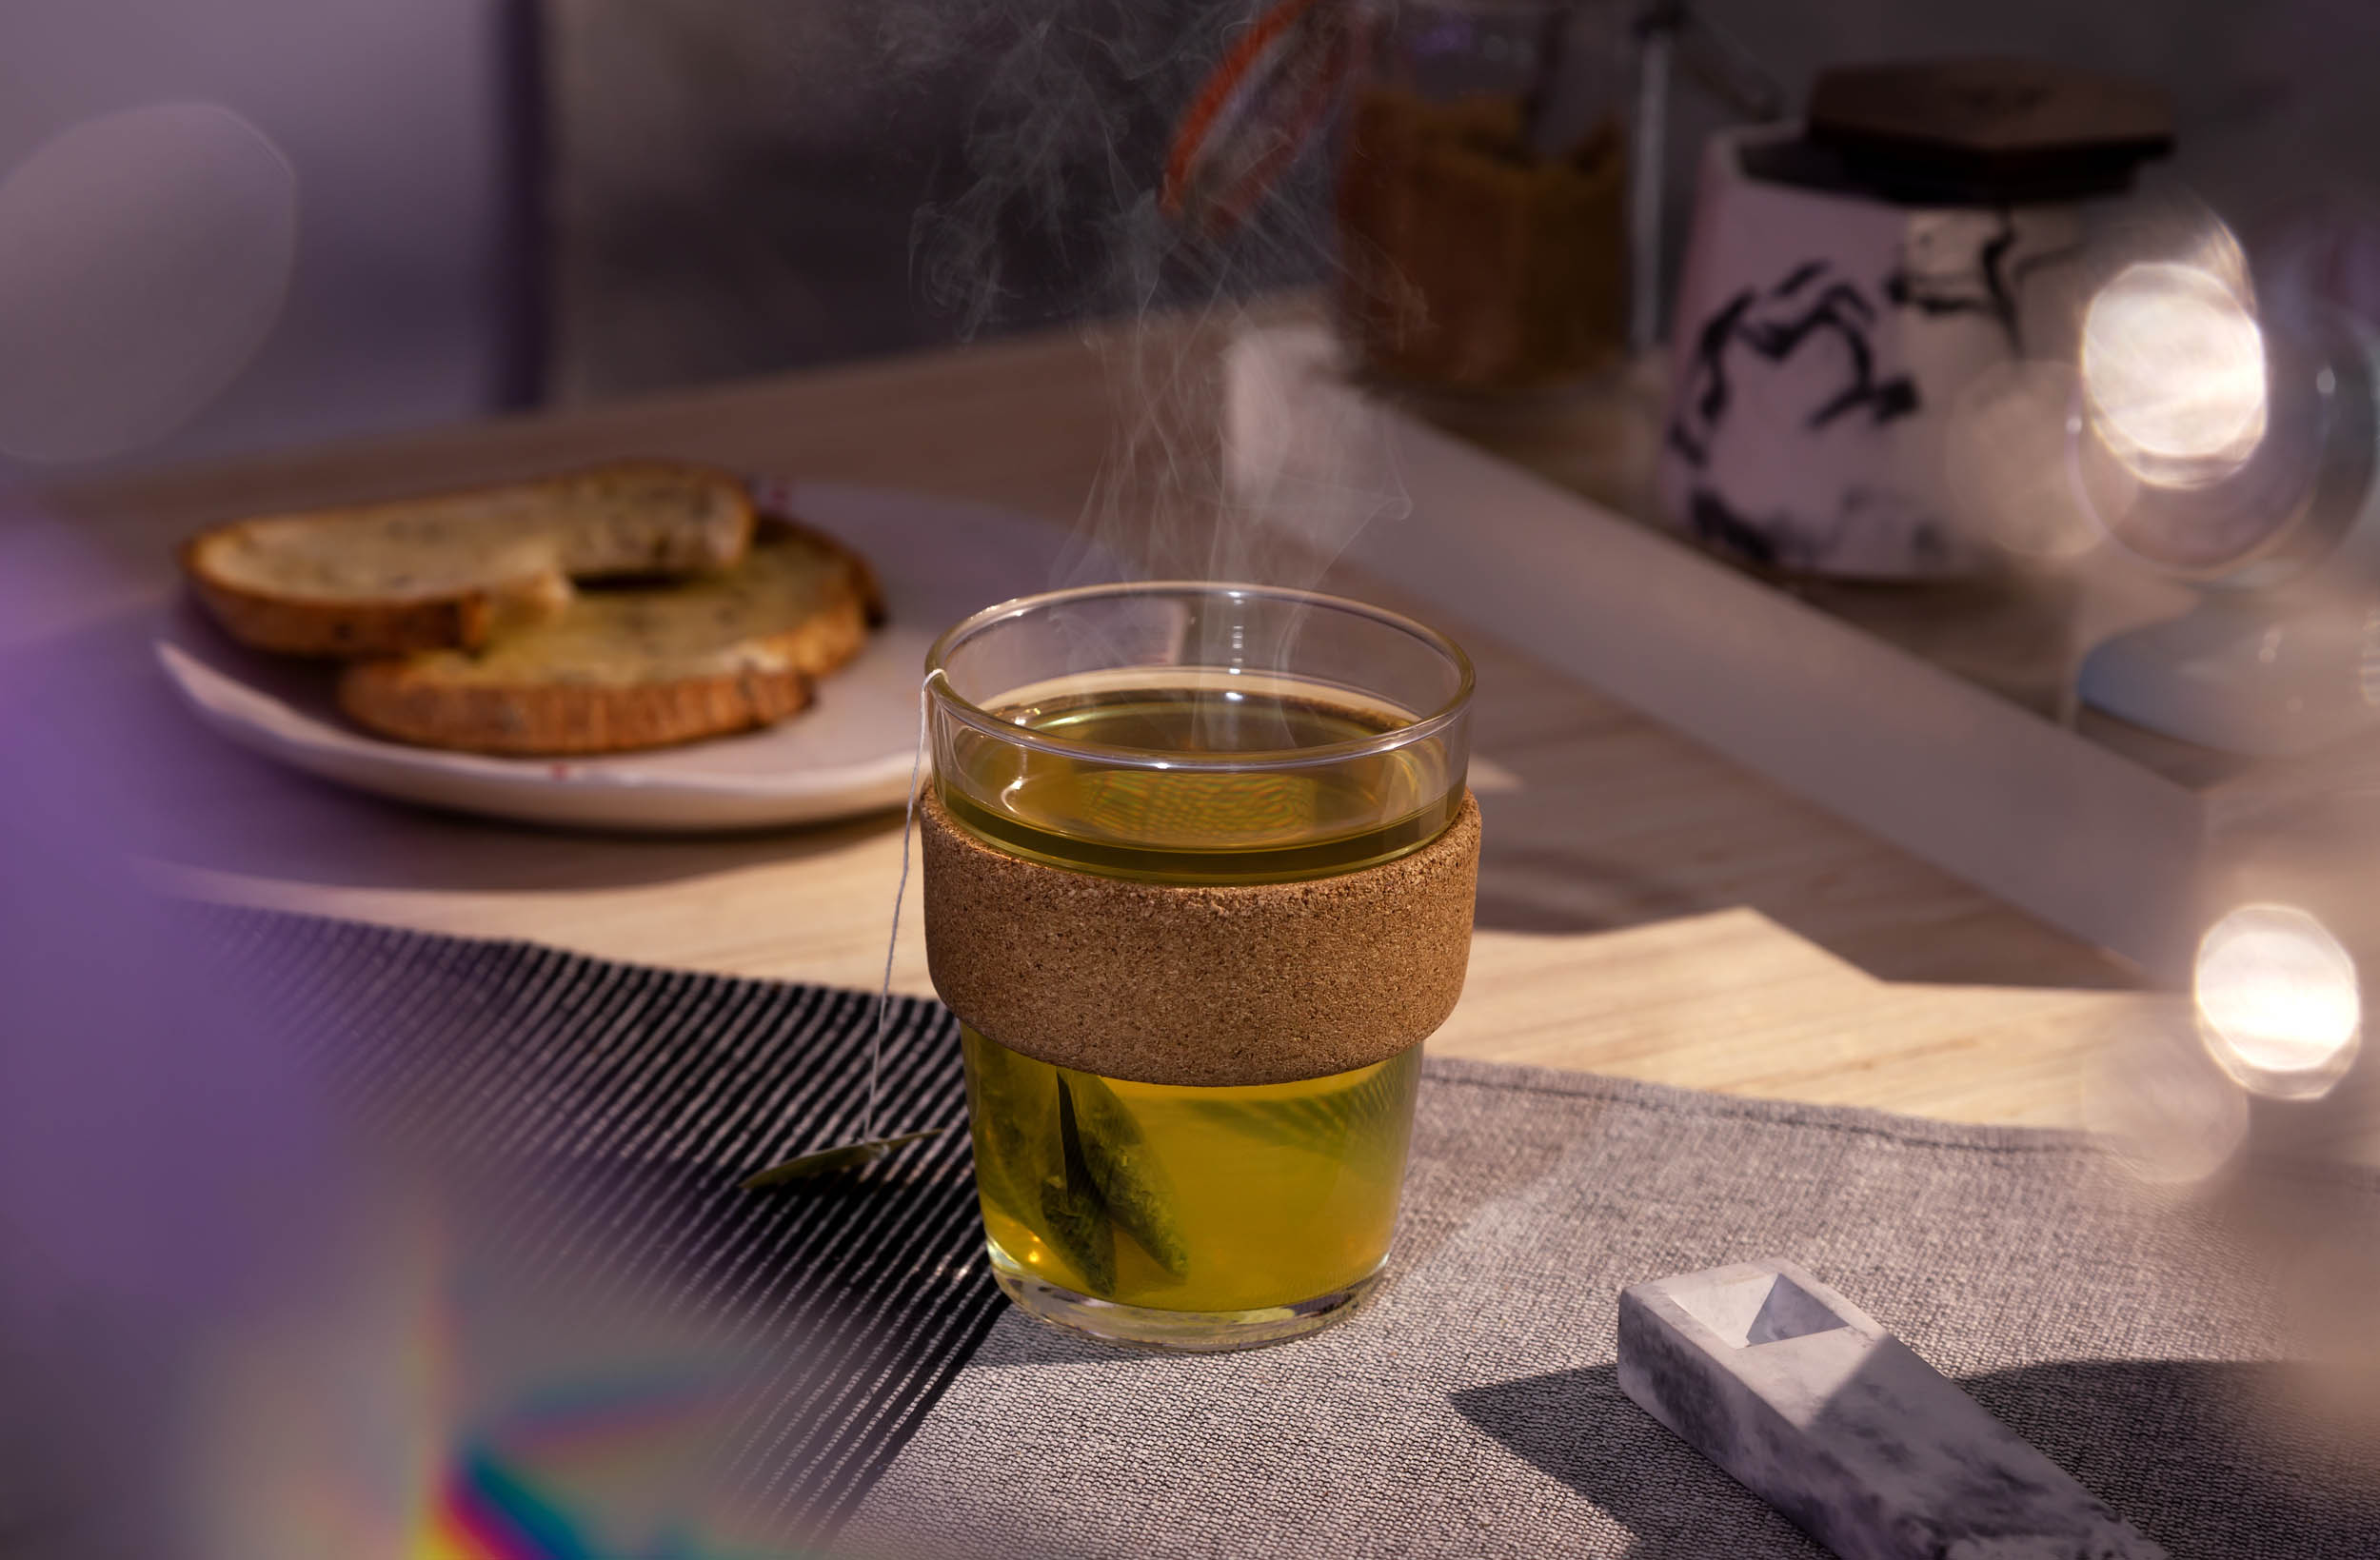 Steaming green tea social media photography for BRNT